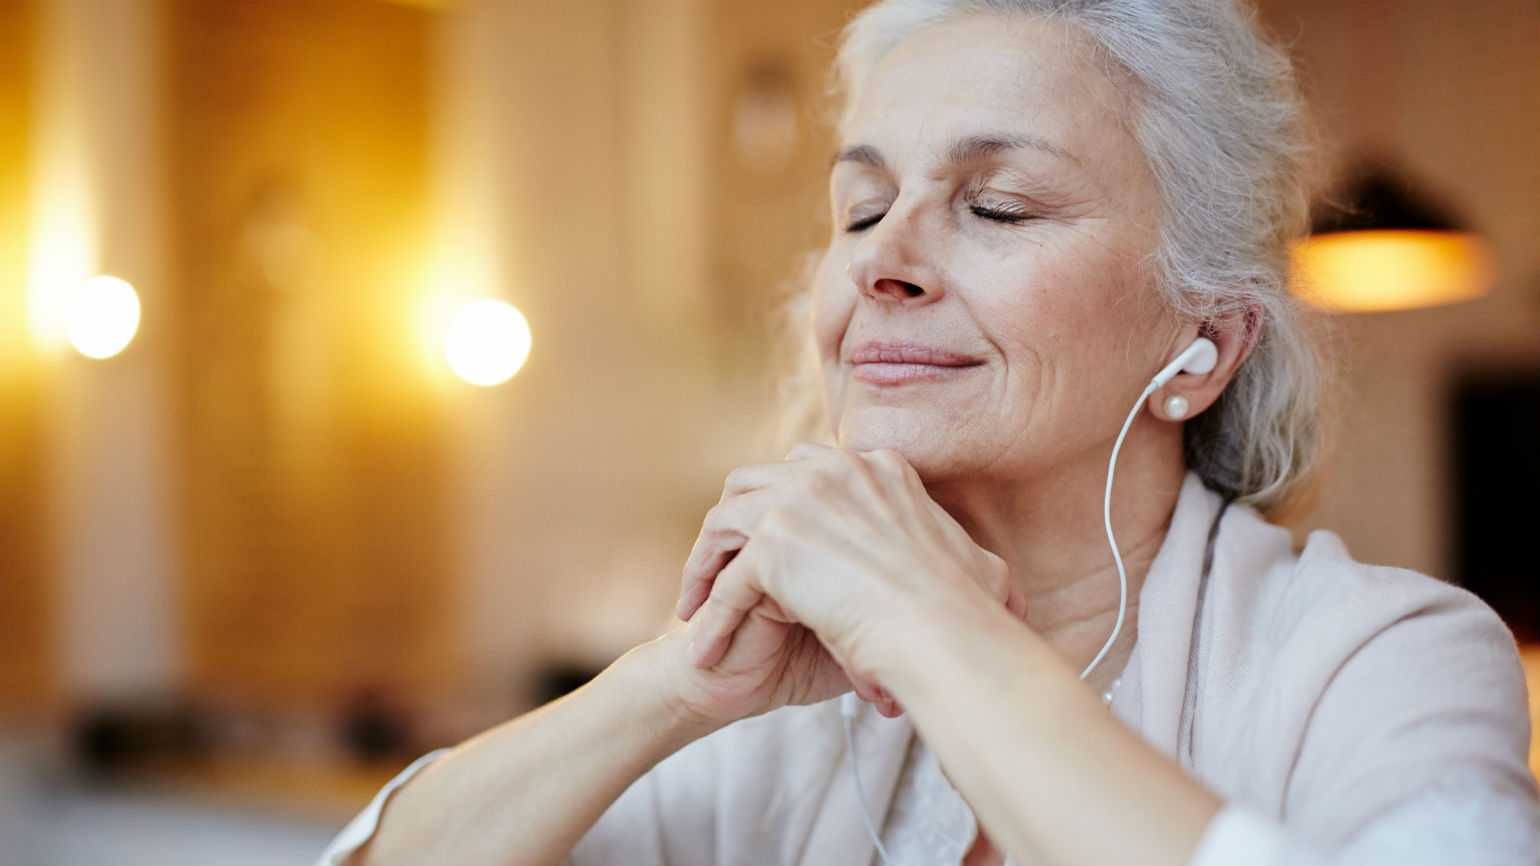 Personalized Playlists Could Lessen Alzheimer's Symptoms